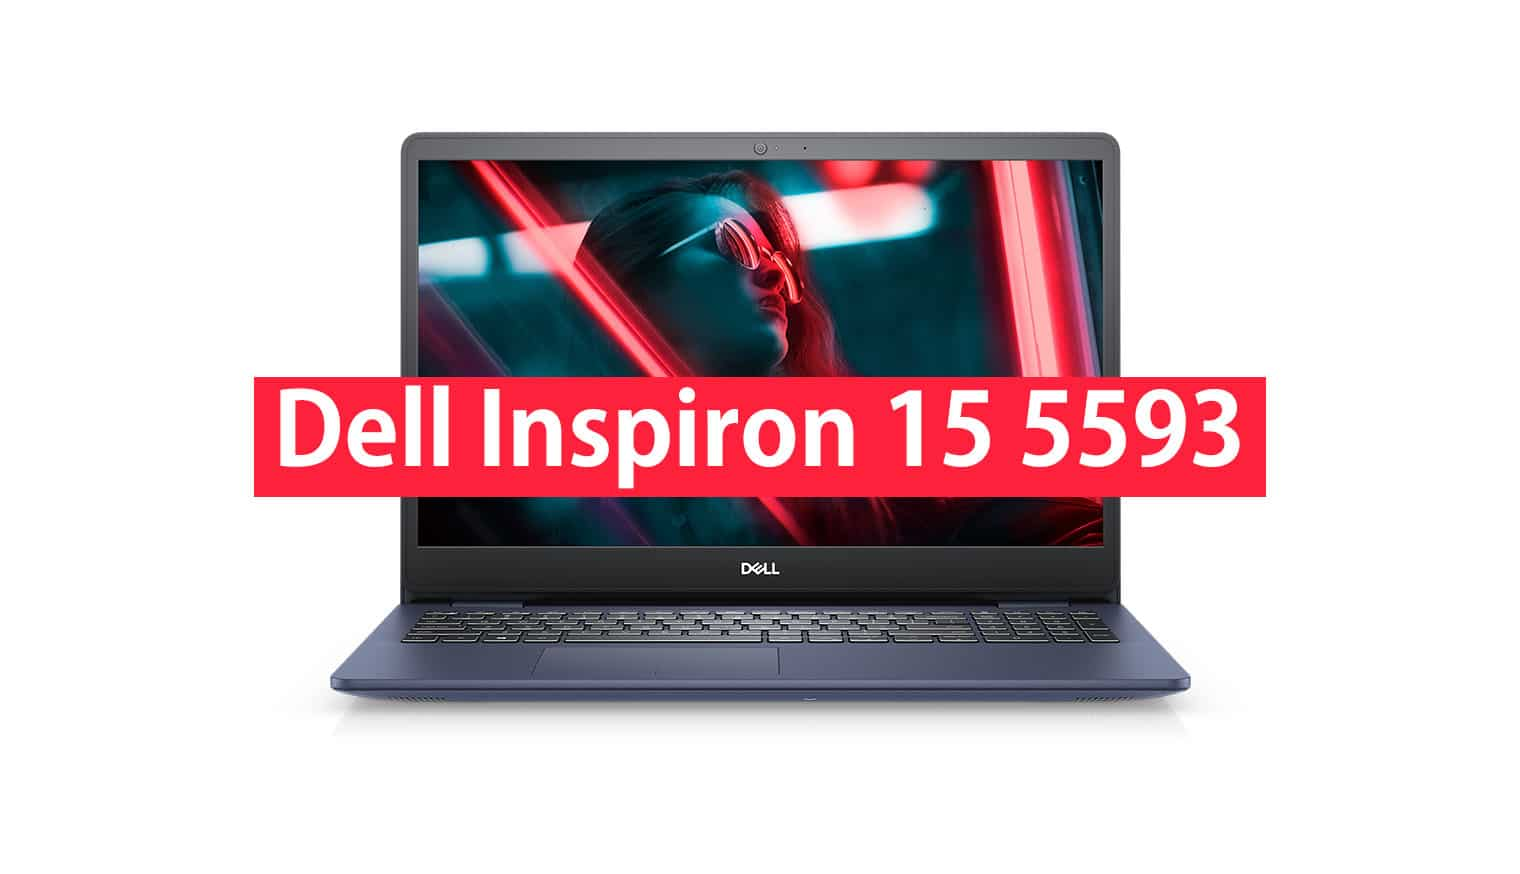 dell inspiron 15 5593 laptop